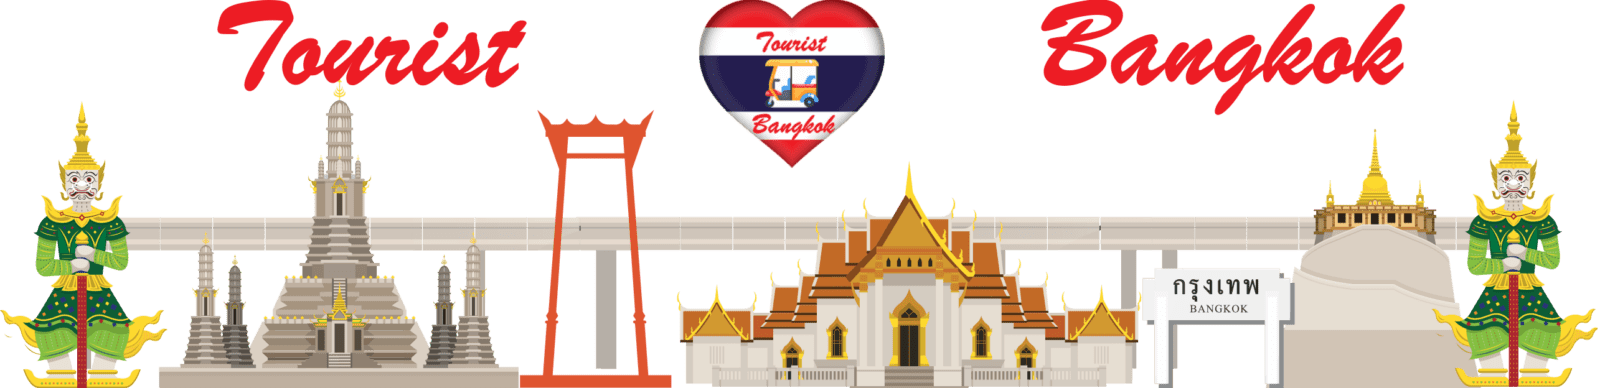 bkk foreground 2.pngheart 2.png2  2.png3  2.png4  2.png5  2 -